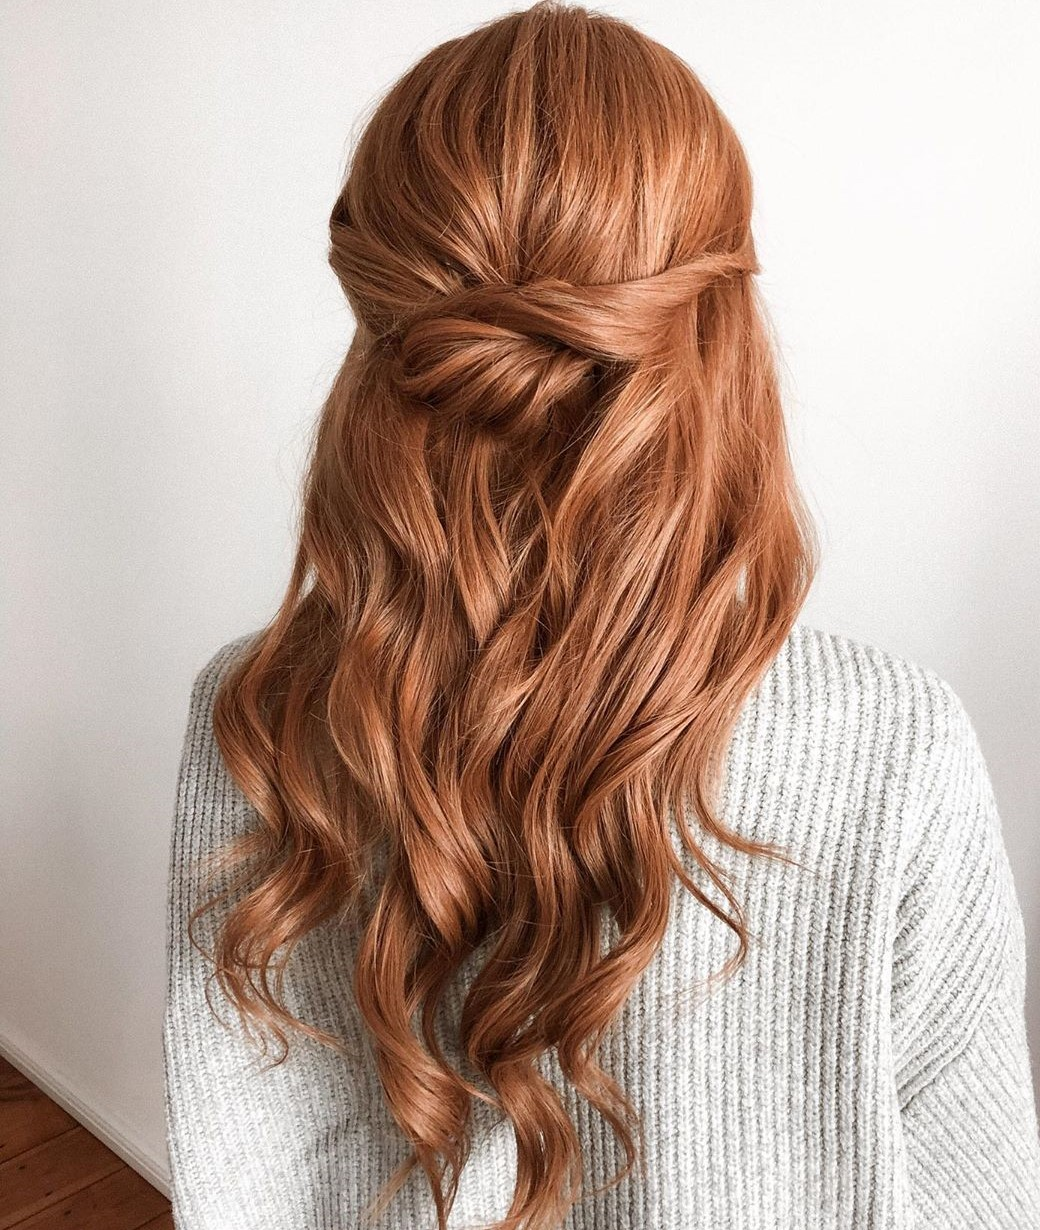 Half Up Half Down Hairstyle for Layered Hair